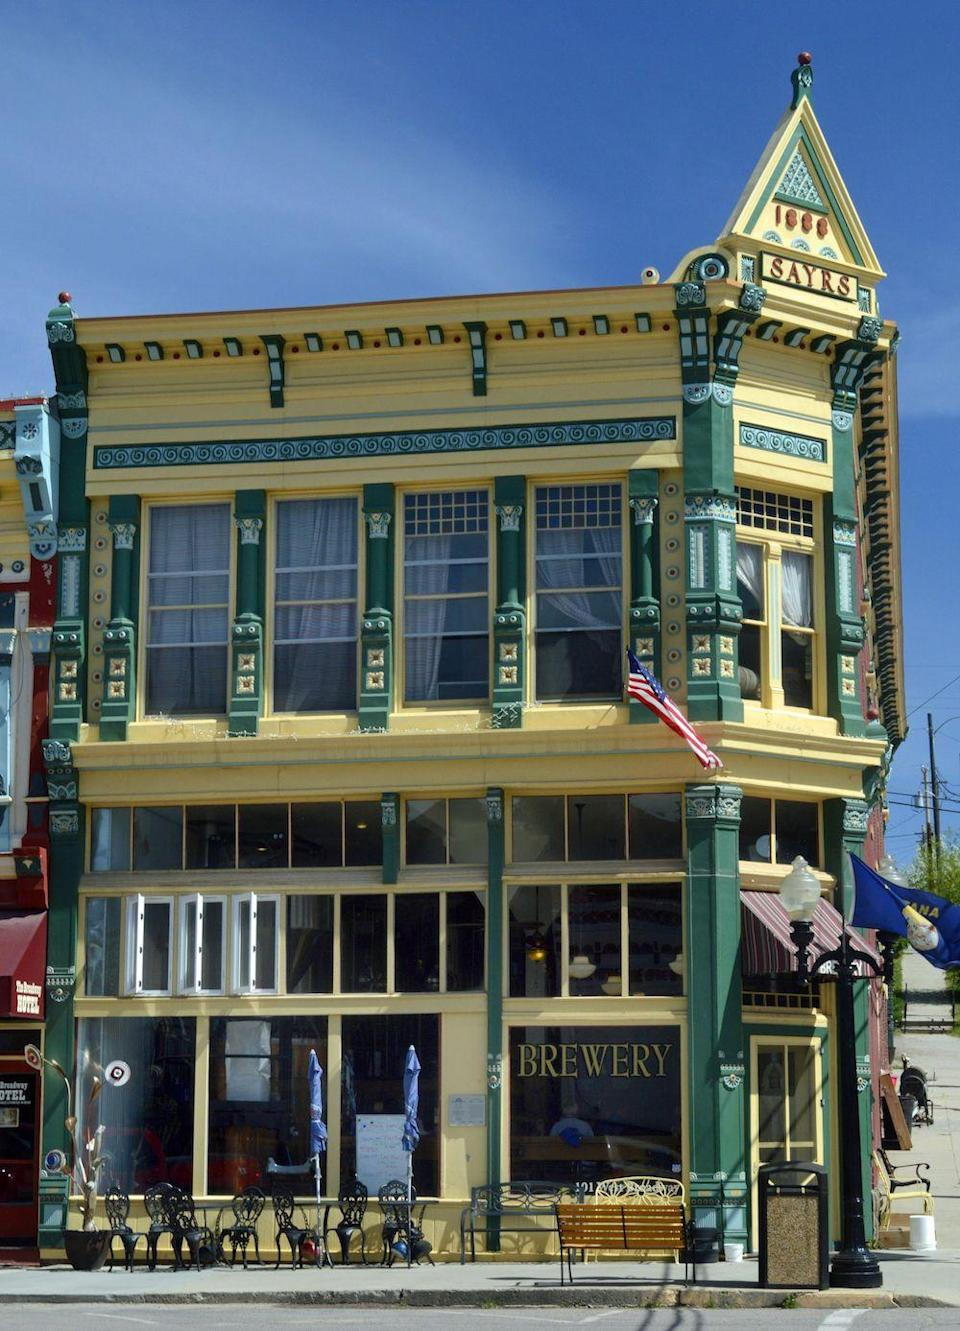 """<p>In the 19th century, Philipsburg was a thriving mining town. Today, it's a place where you can find treasures of the antique variety. (Okay, you can also <a href=""""http://www.visitphilipsburg.com/"""" rel=""""nofollow noopener"""" target=""""_blank"""" data-ylk=""""slk:pan for sapphires"""" class=""""link rapid-noclick-resp"""">pan for sapphires</a> here, too.) If all that searching has you parched, there's no better way to quench your thirst than at the <a href=""""http://www.visitphilipsburg.com/about-philipsburg/breweries-distilleries.php"""" rel=""""nofollow noopener"""" target=""""_blank"""" data-ylk=""""slk:Philipsburg Brewing Company"""" class=""""link rapid-noclick-resp"""">Philipsburg Brewing Company</a>, housed in the historic Sayers building.</p><p><a href=""""https://www.housebeautiful.com/design-inspiration/real-estate/a4224/affordable-montana-mansion-house-tour/"""" rel=""""nofollow noopener"""" target=""""_blank"""" data-ylk=""""slk:Check out a surprisingly affordable Montana mansion »"""" class=""""link rapid-noclick-resp""""><em>Check out a surprisingly affordable Montana mansion »</em></a></p>"""